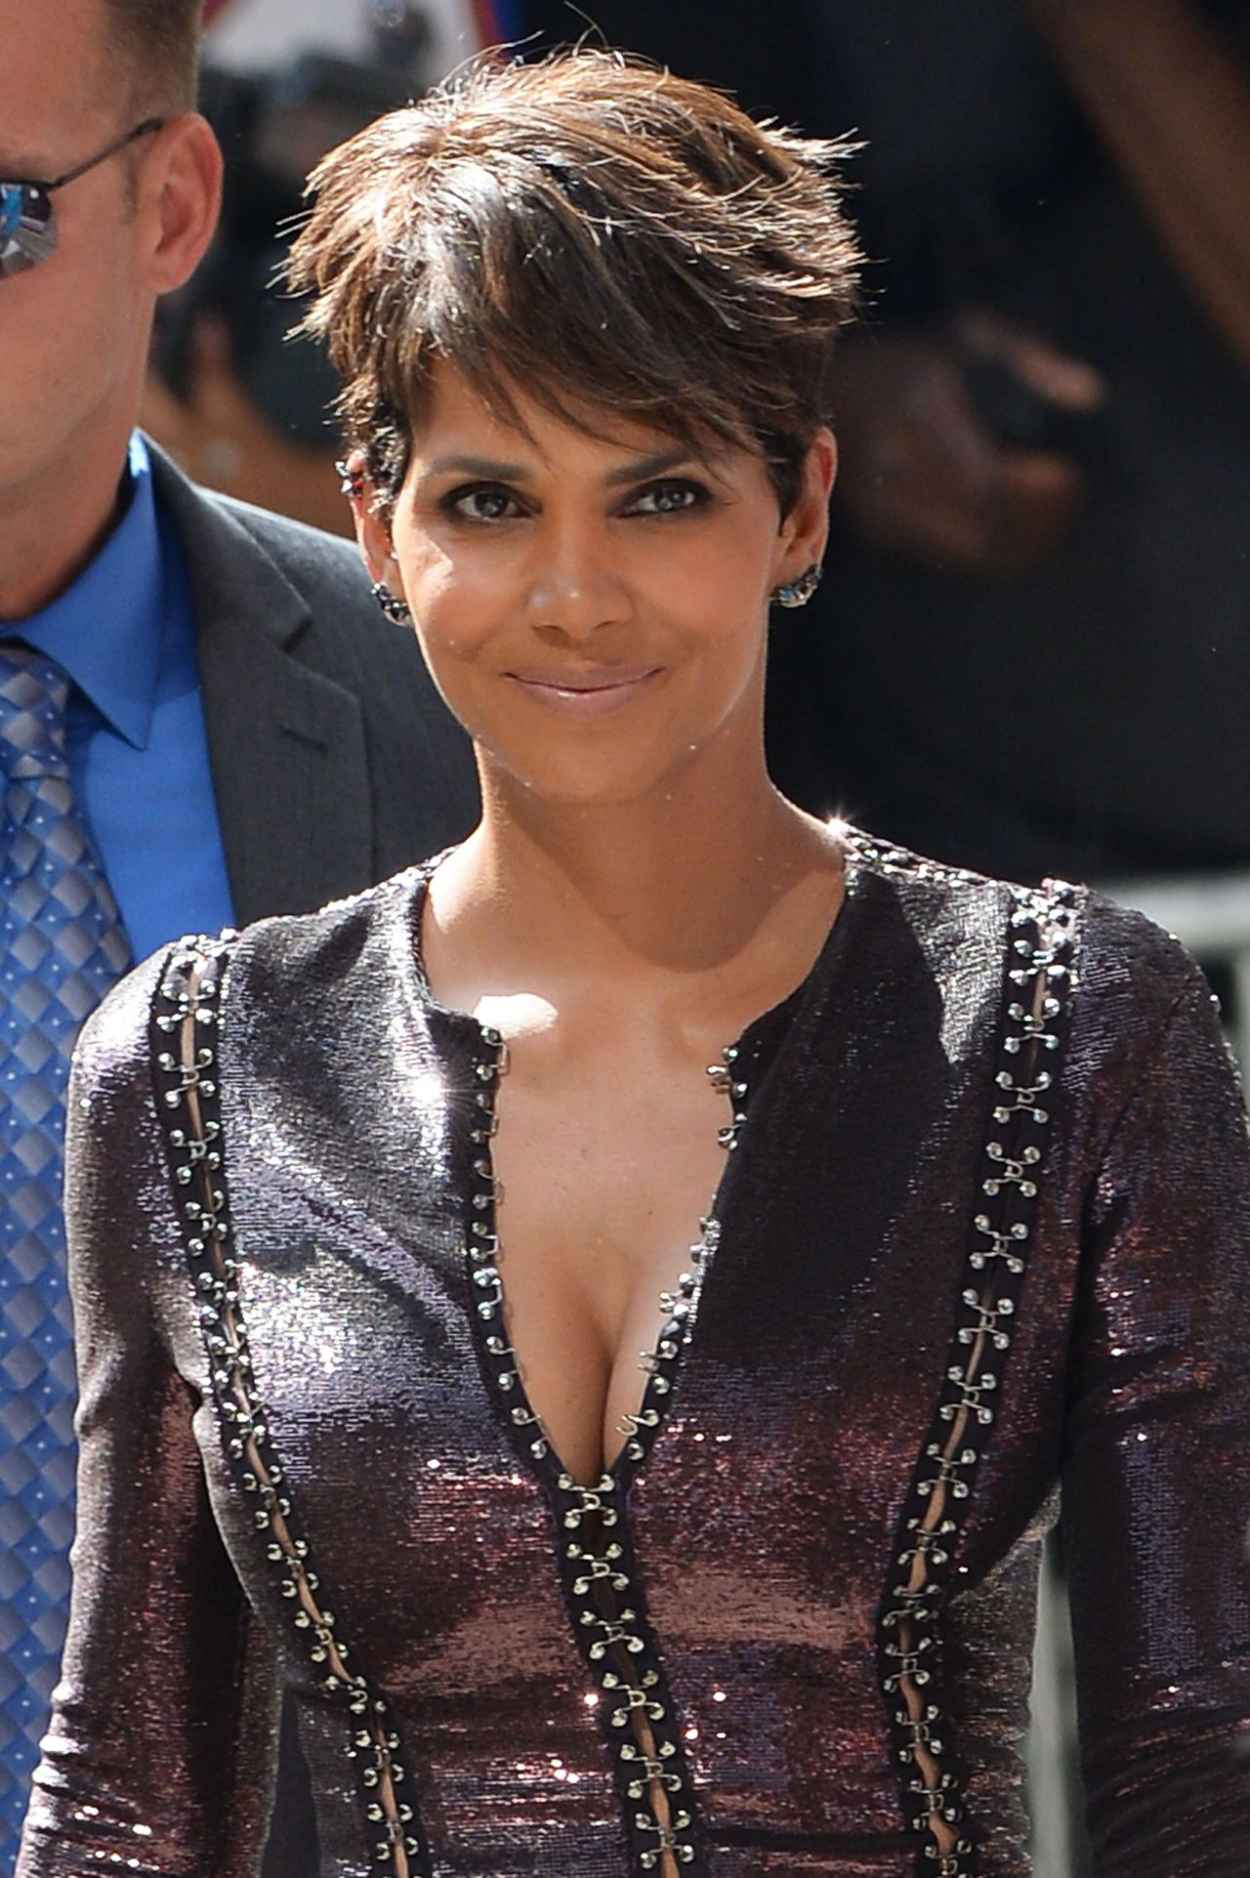 Halle Berry at The Late Show With David Letterman in New York City - July 2015-1